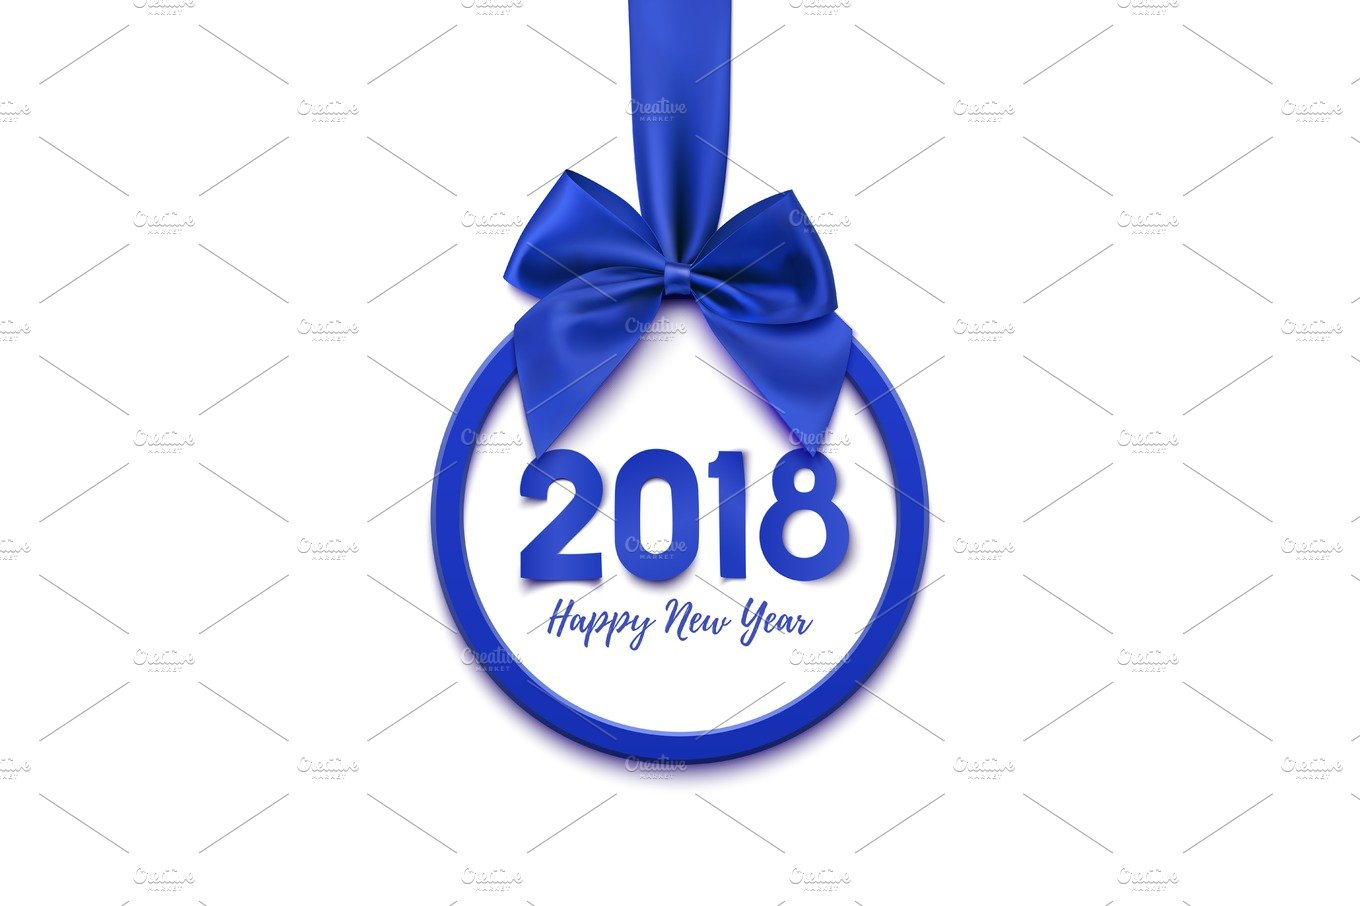 happy new year 2018 round banner with red ribbon and bow graphic